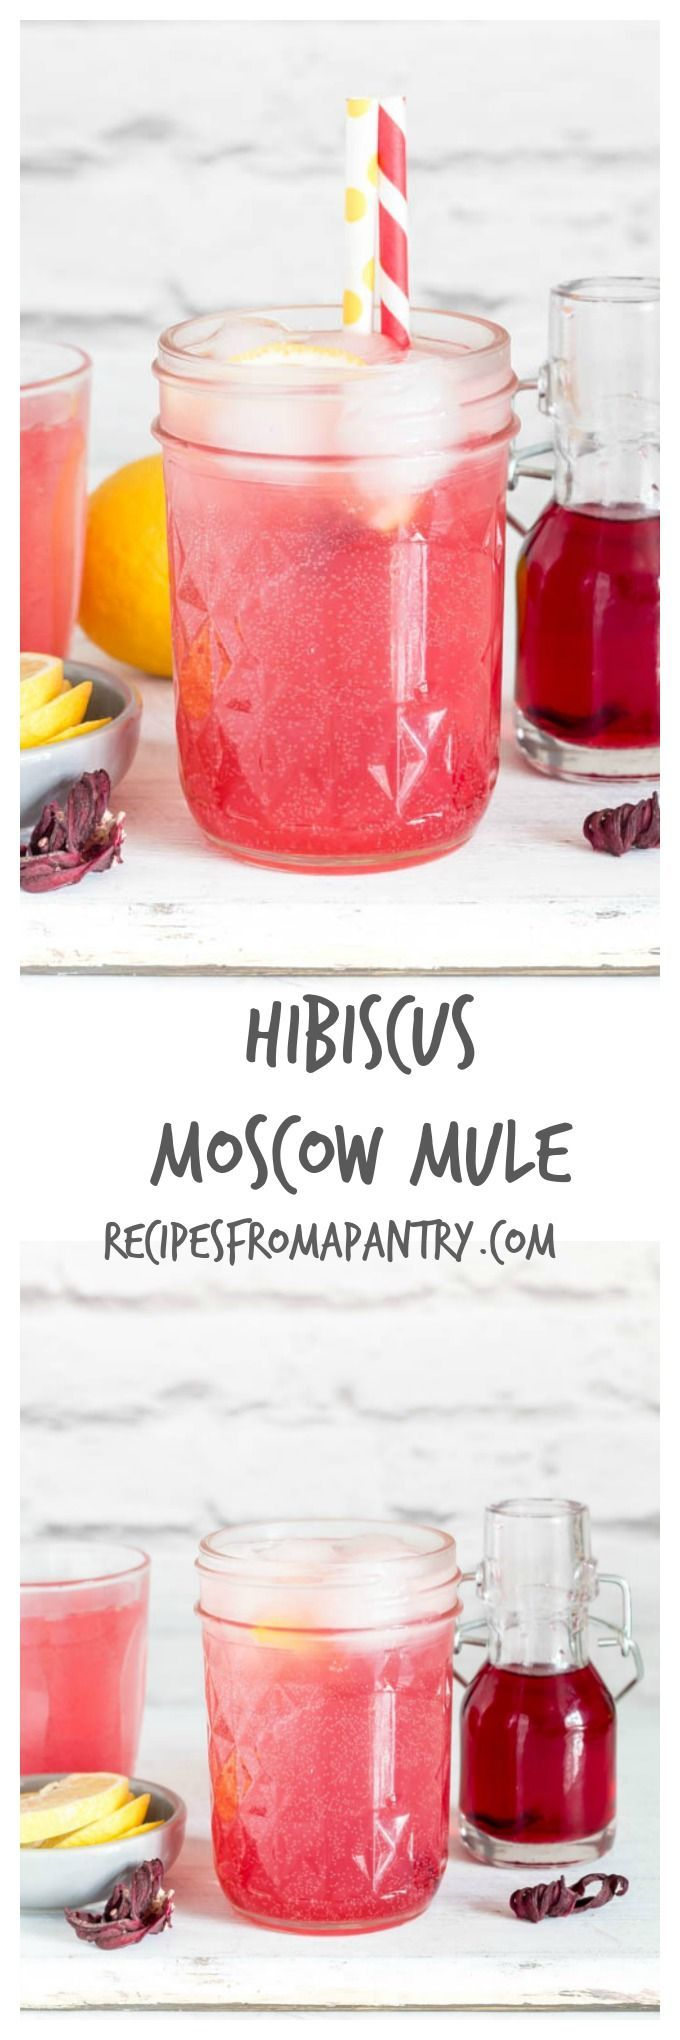 Treat yourself to this Hibiscus Moscow Mule recipe | Recipes From A Pantry